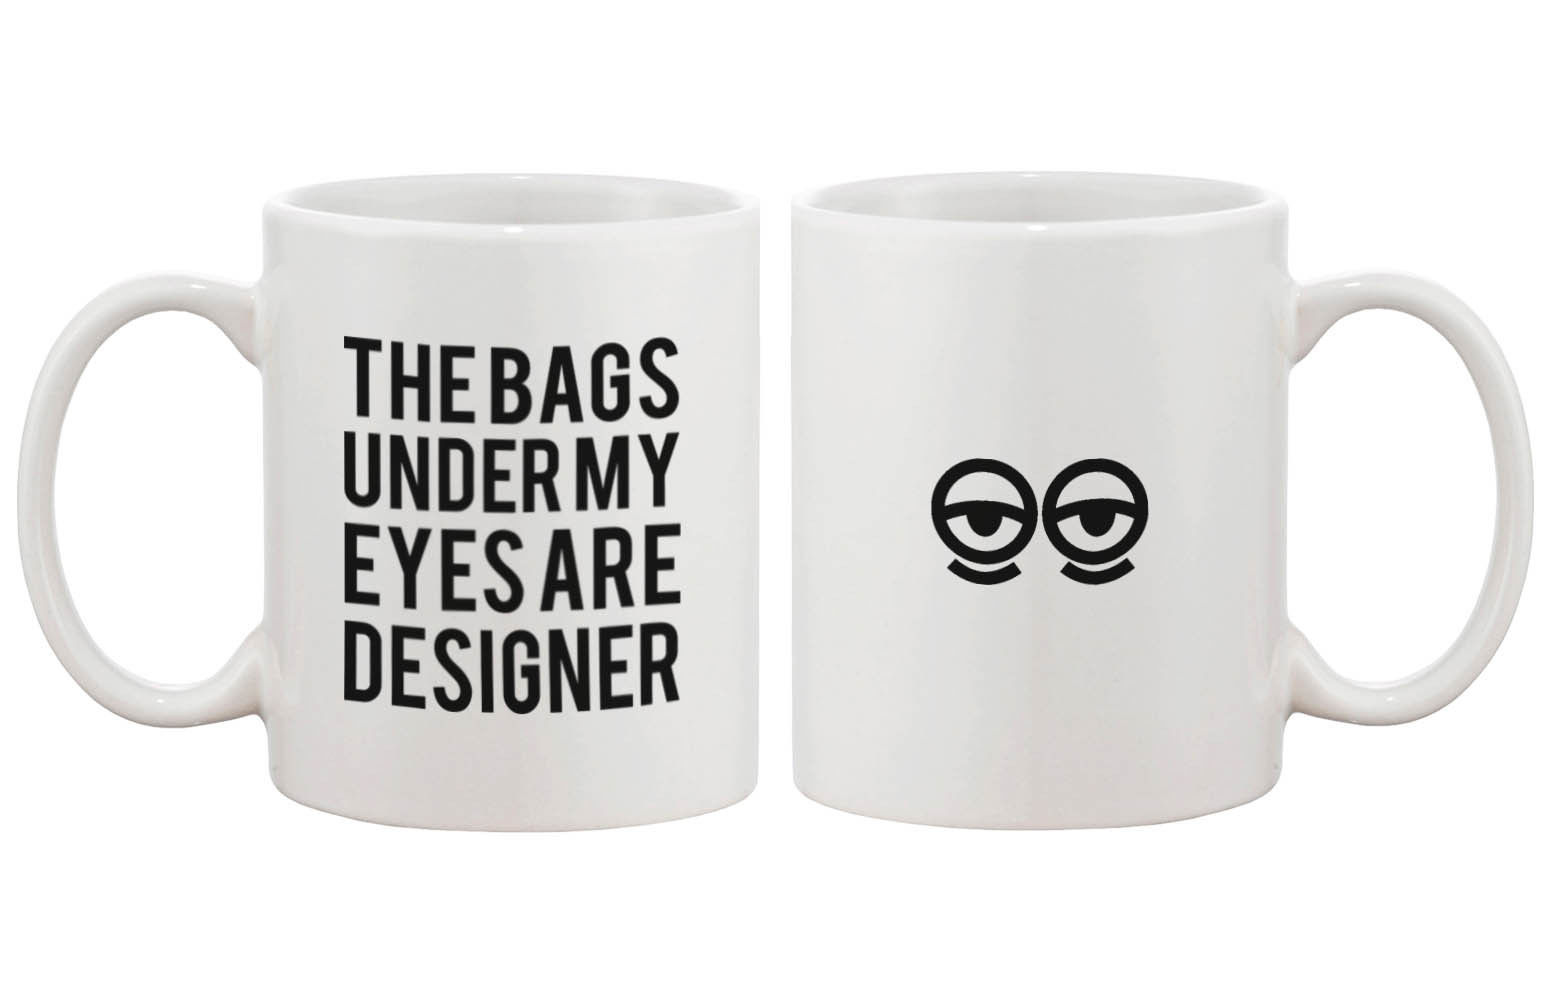 Primary image for Funny Ceramic Coffee Mug – The Bags Under My Eyes Are Designer - Dishwasher Safe